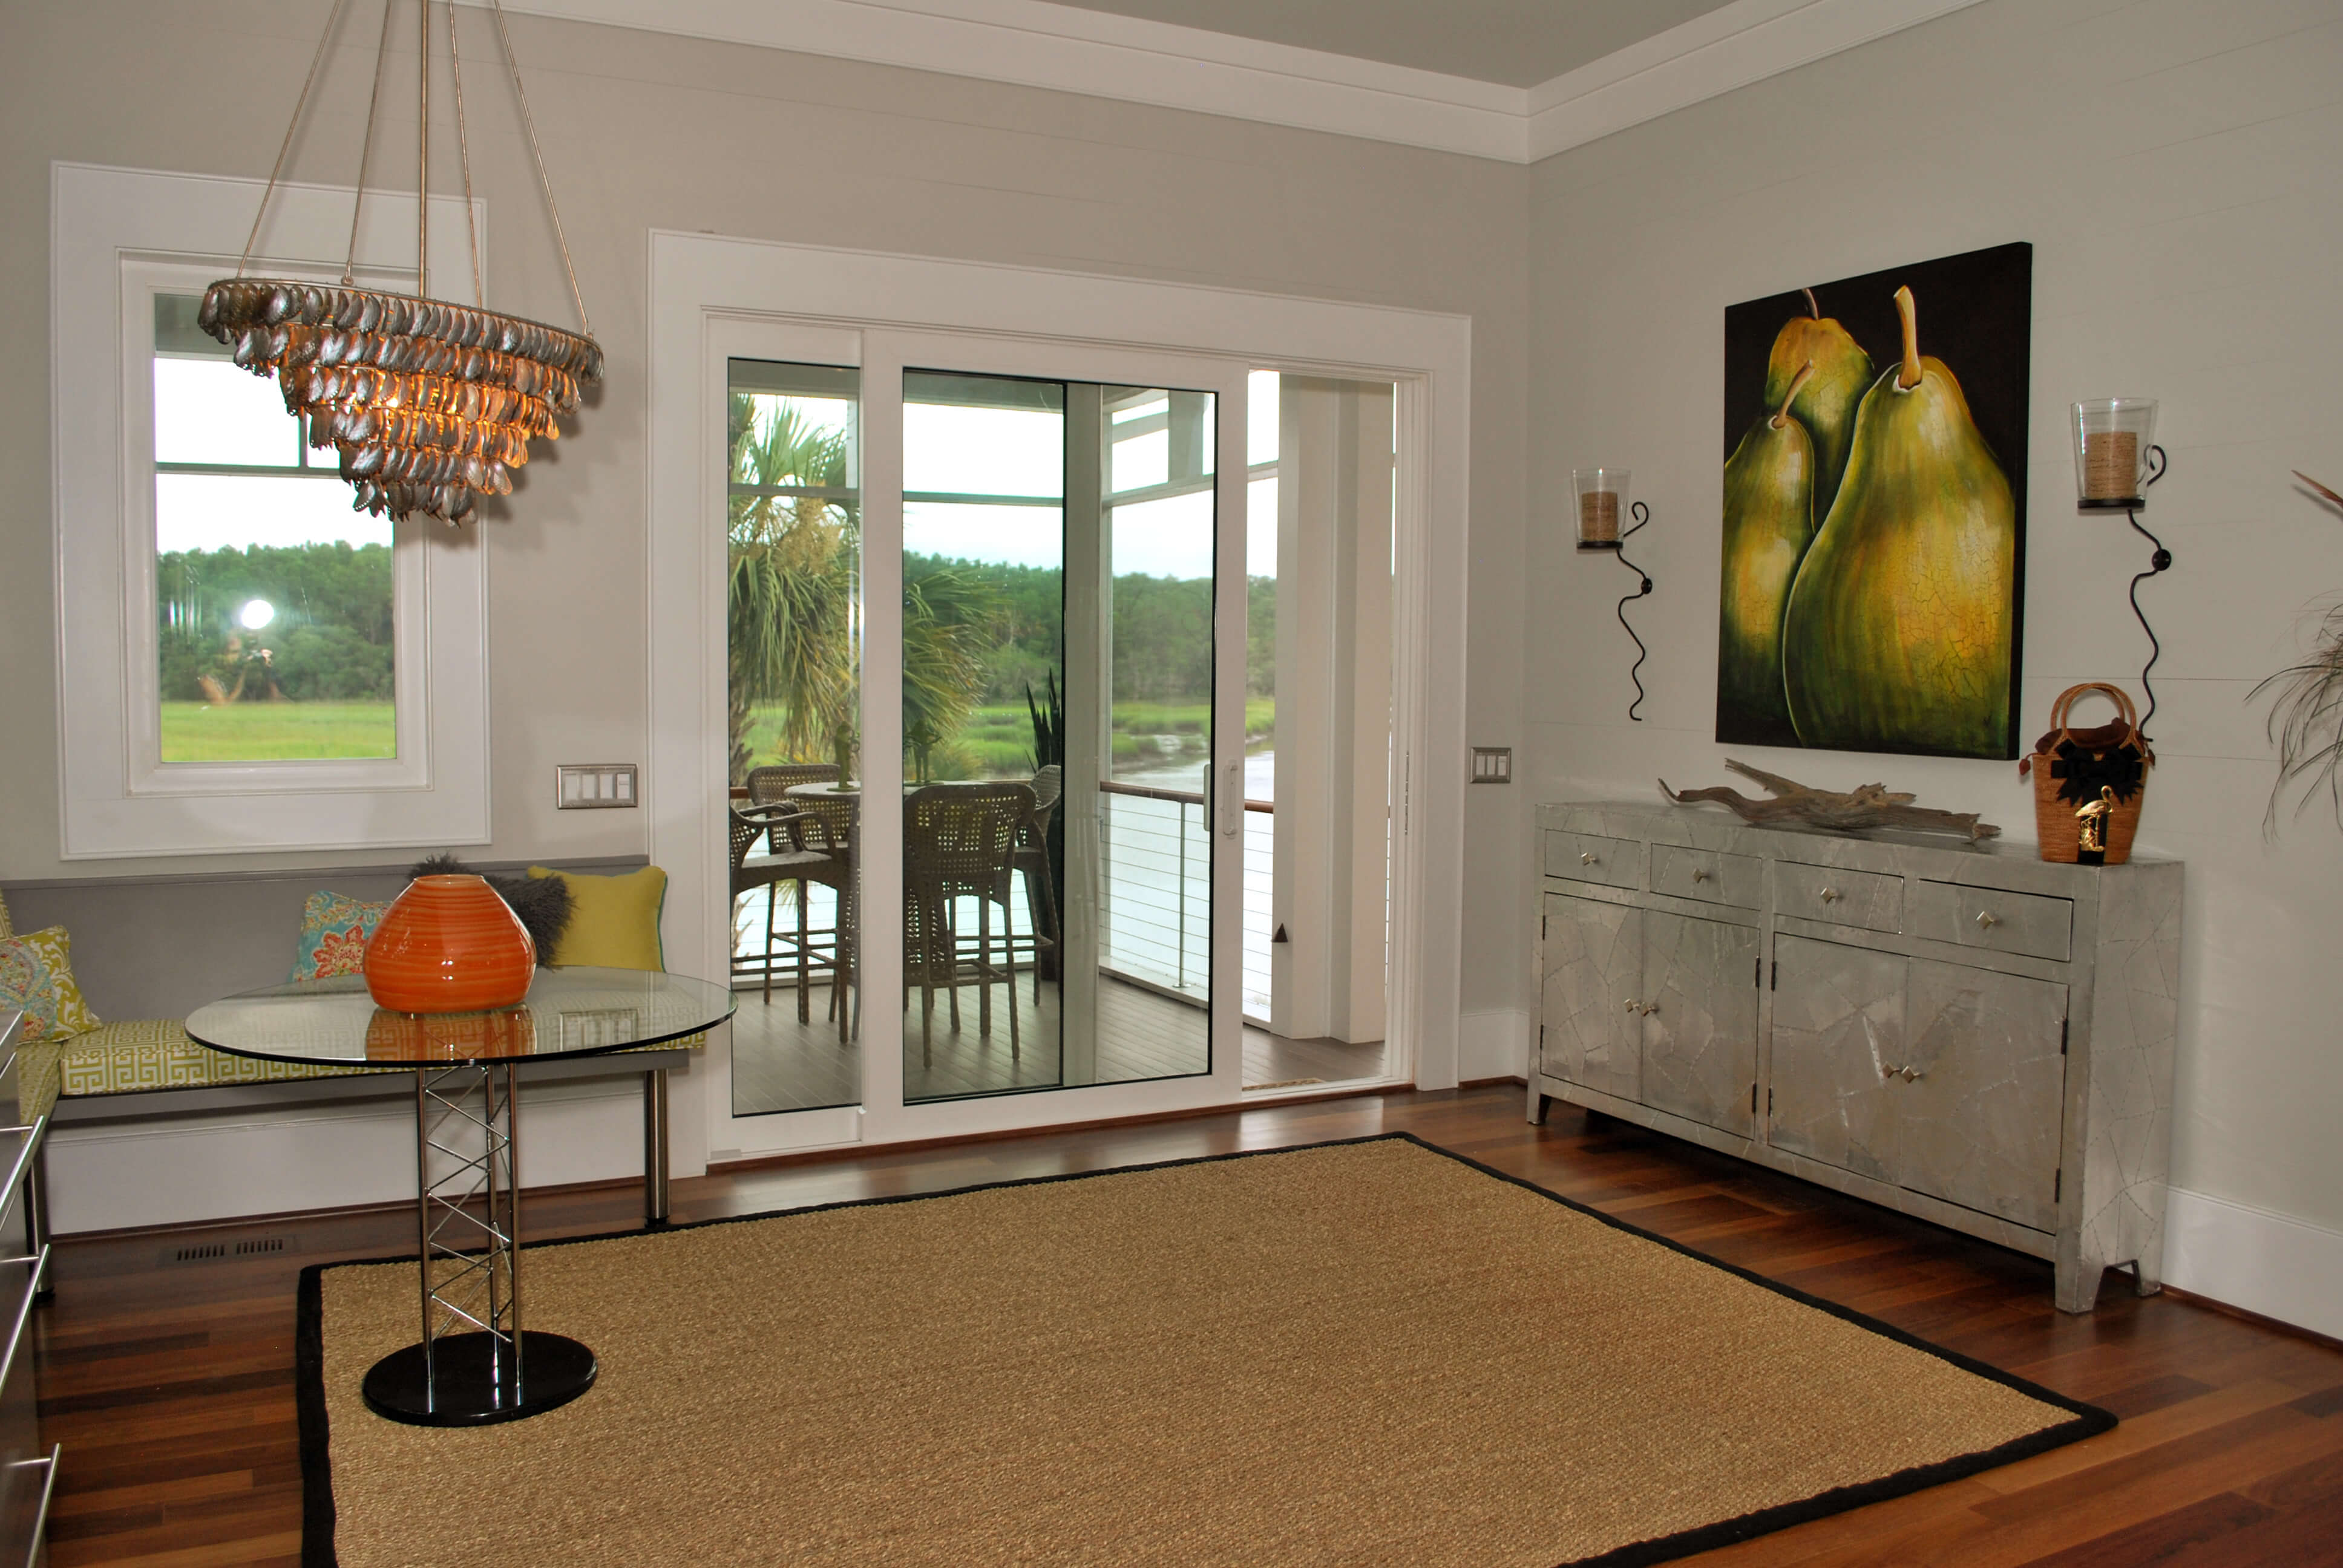 Wider view of nook area off kitchen, with art pieces and grey cabinet, sliding door to second dining area on deck.